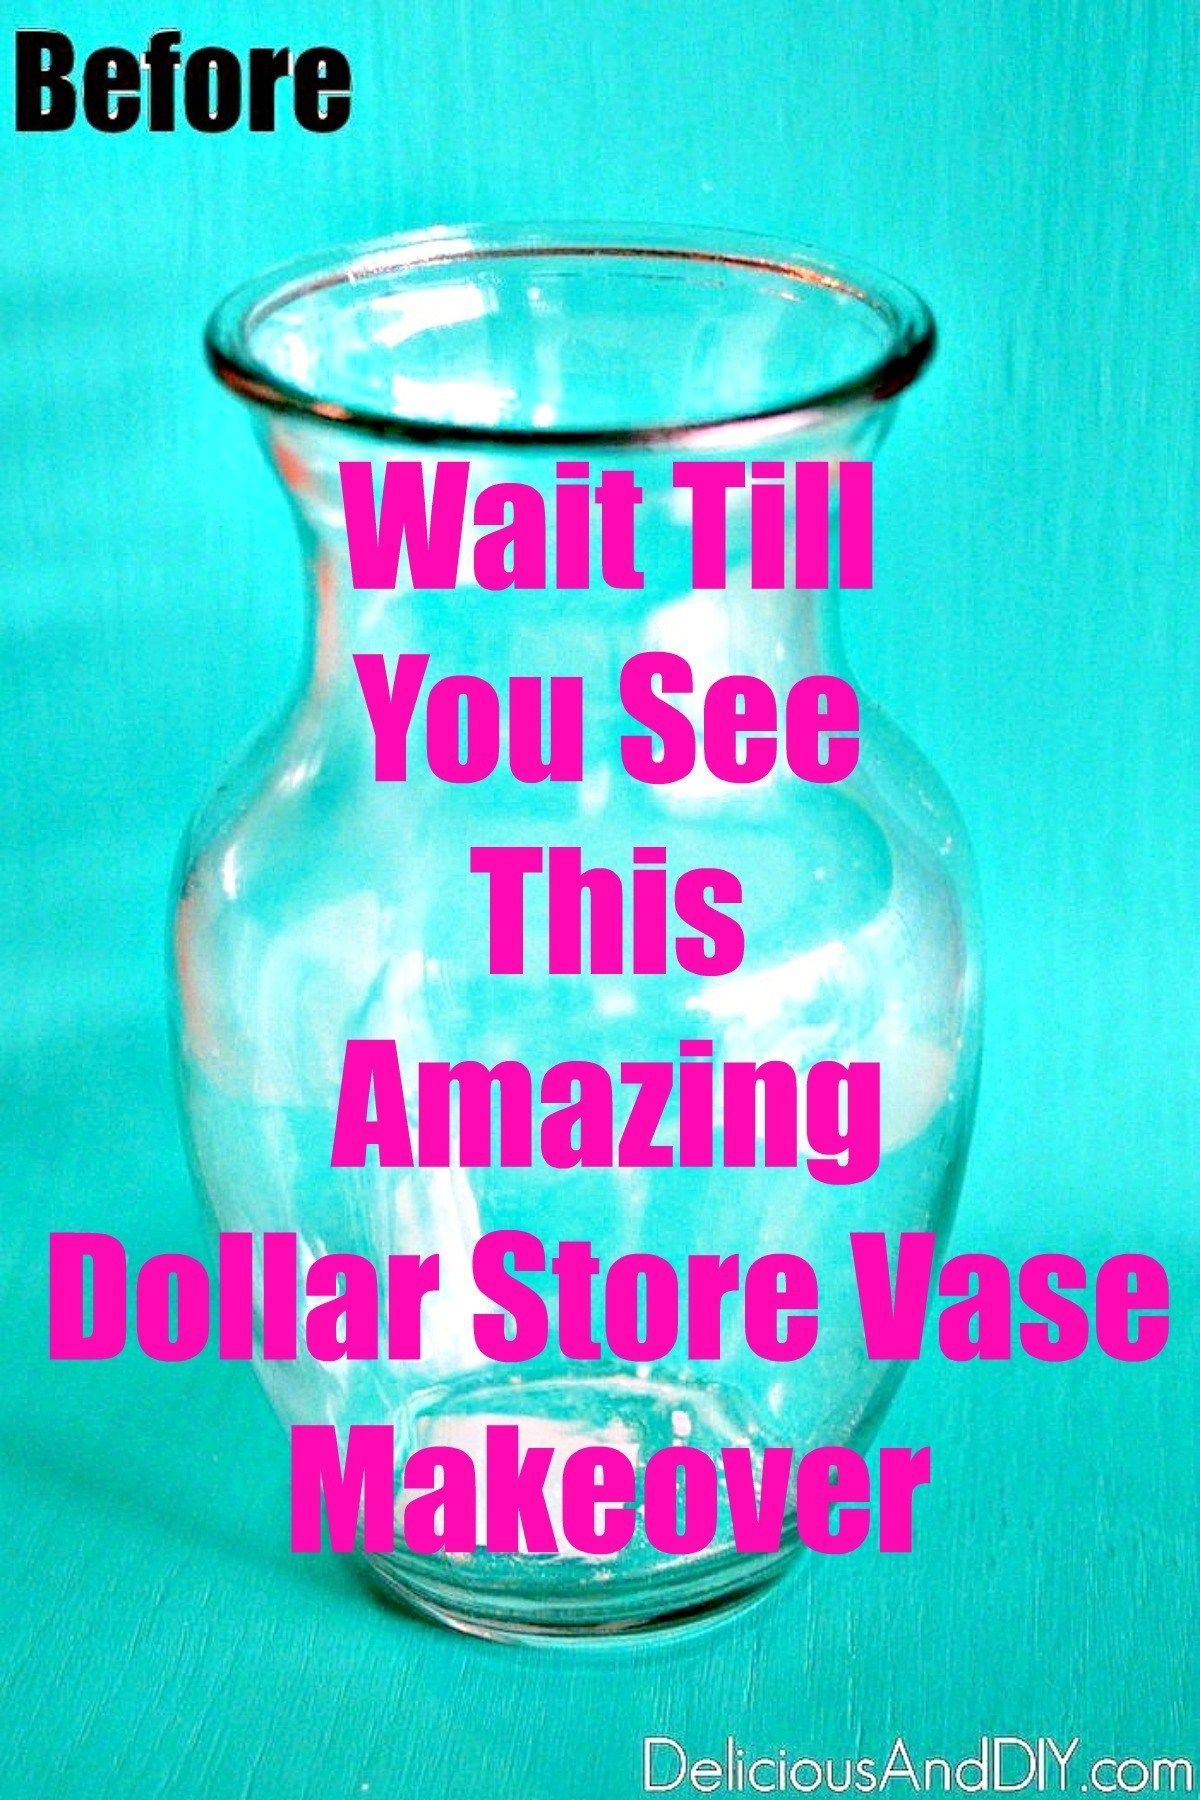 See how you can transform a boring Dollar Store Vase into a Stunning Anthropologie Inspired Vase Dollar Store Vase Centerpiece Ideas DIY Dollar Store Vase Ideas